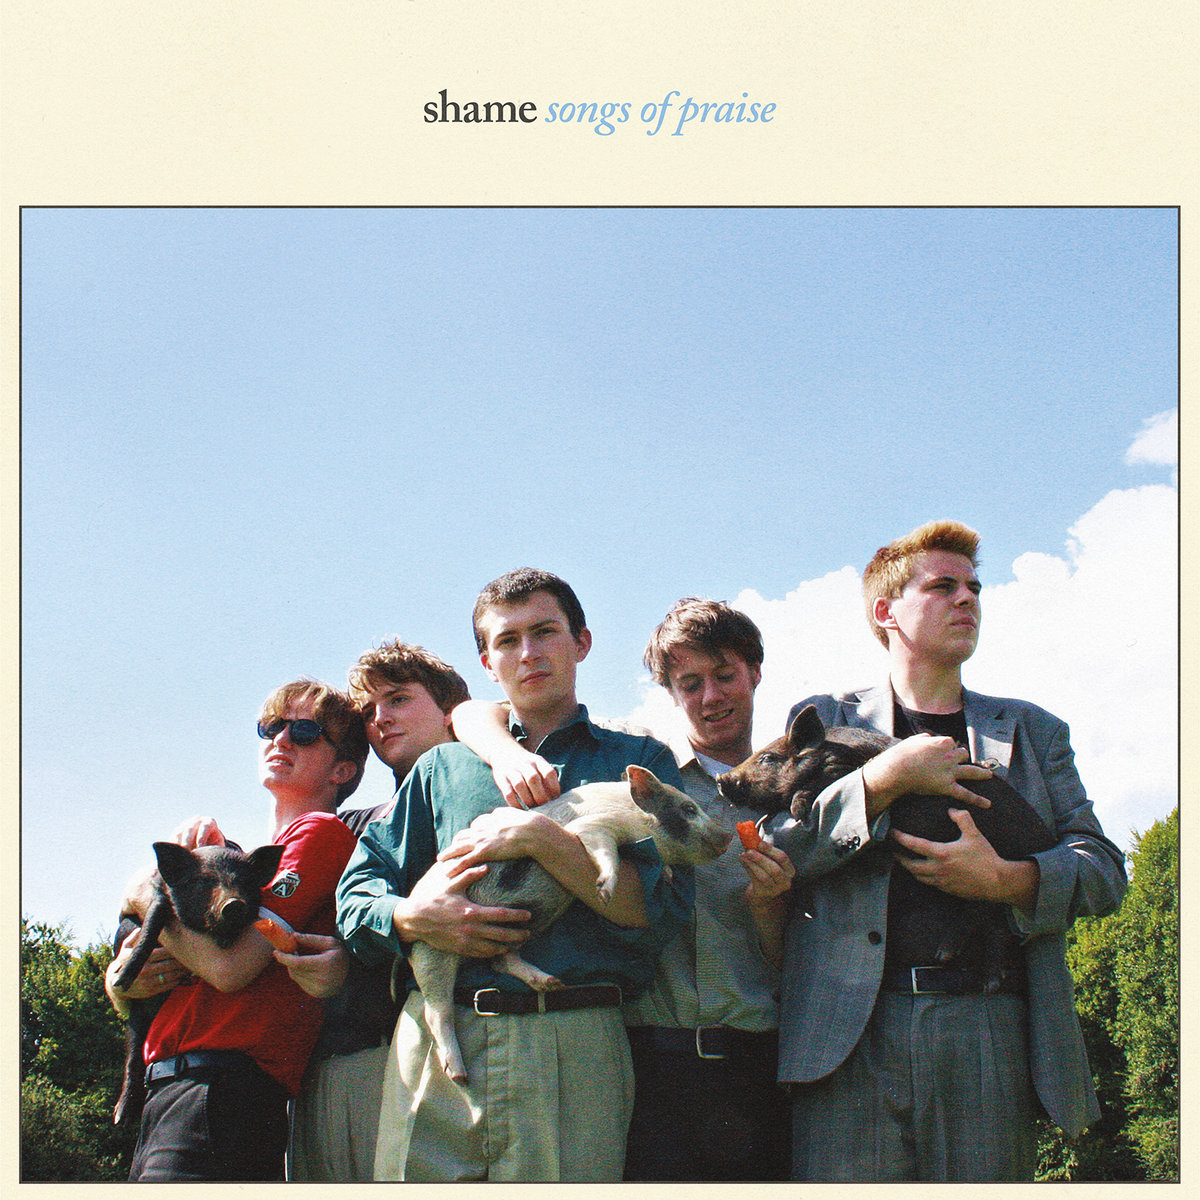 Songs of Praise | shame